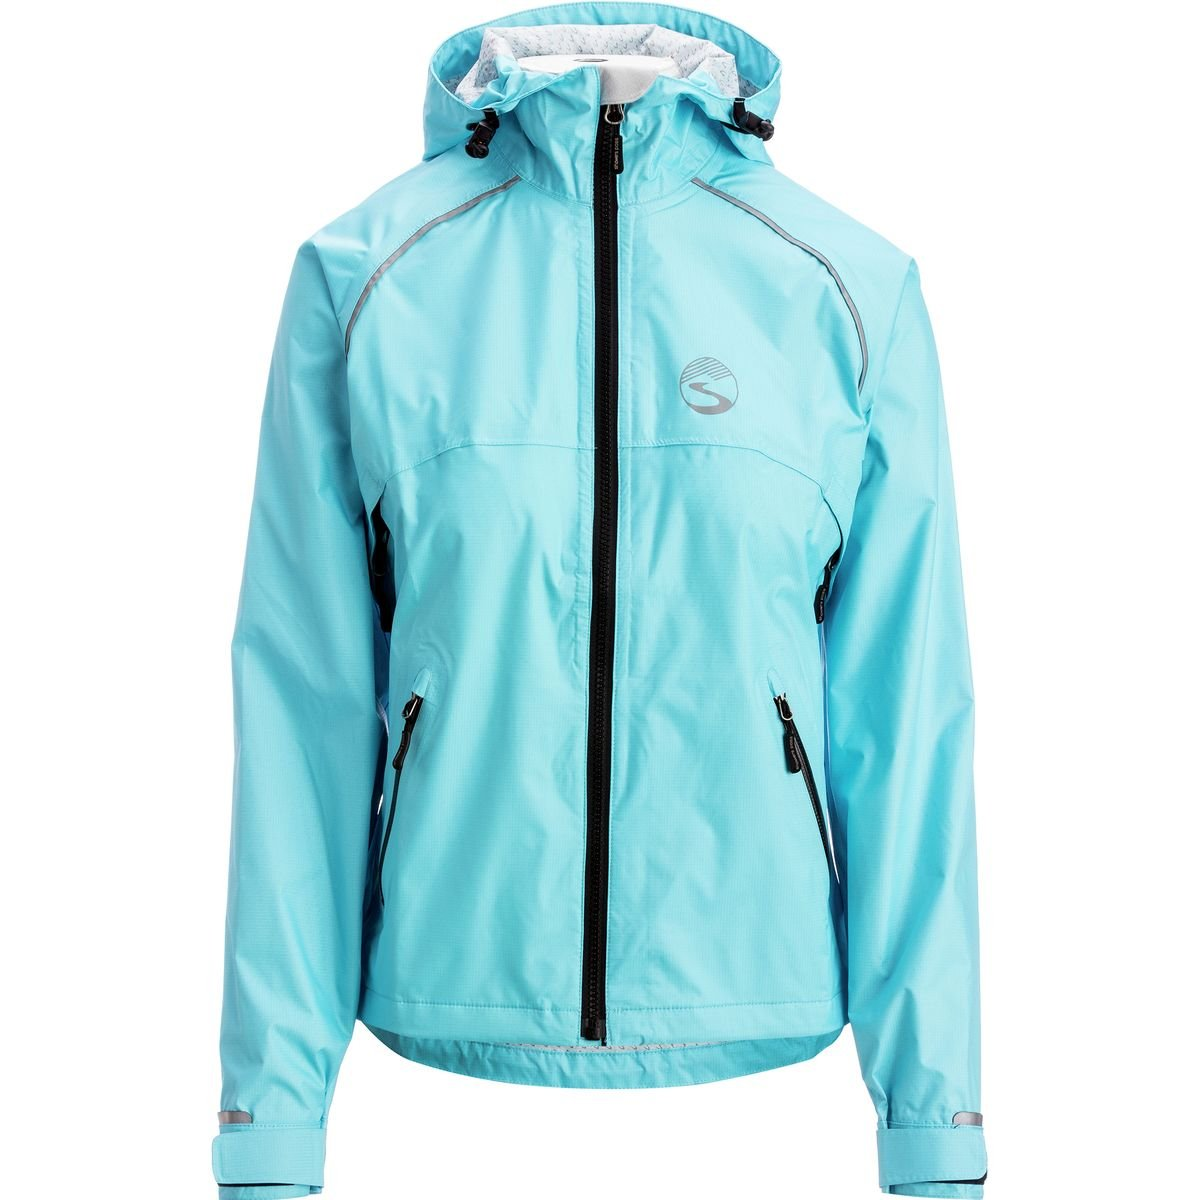 Powder bluee Large Showers Pass Women's Syncline Jacket